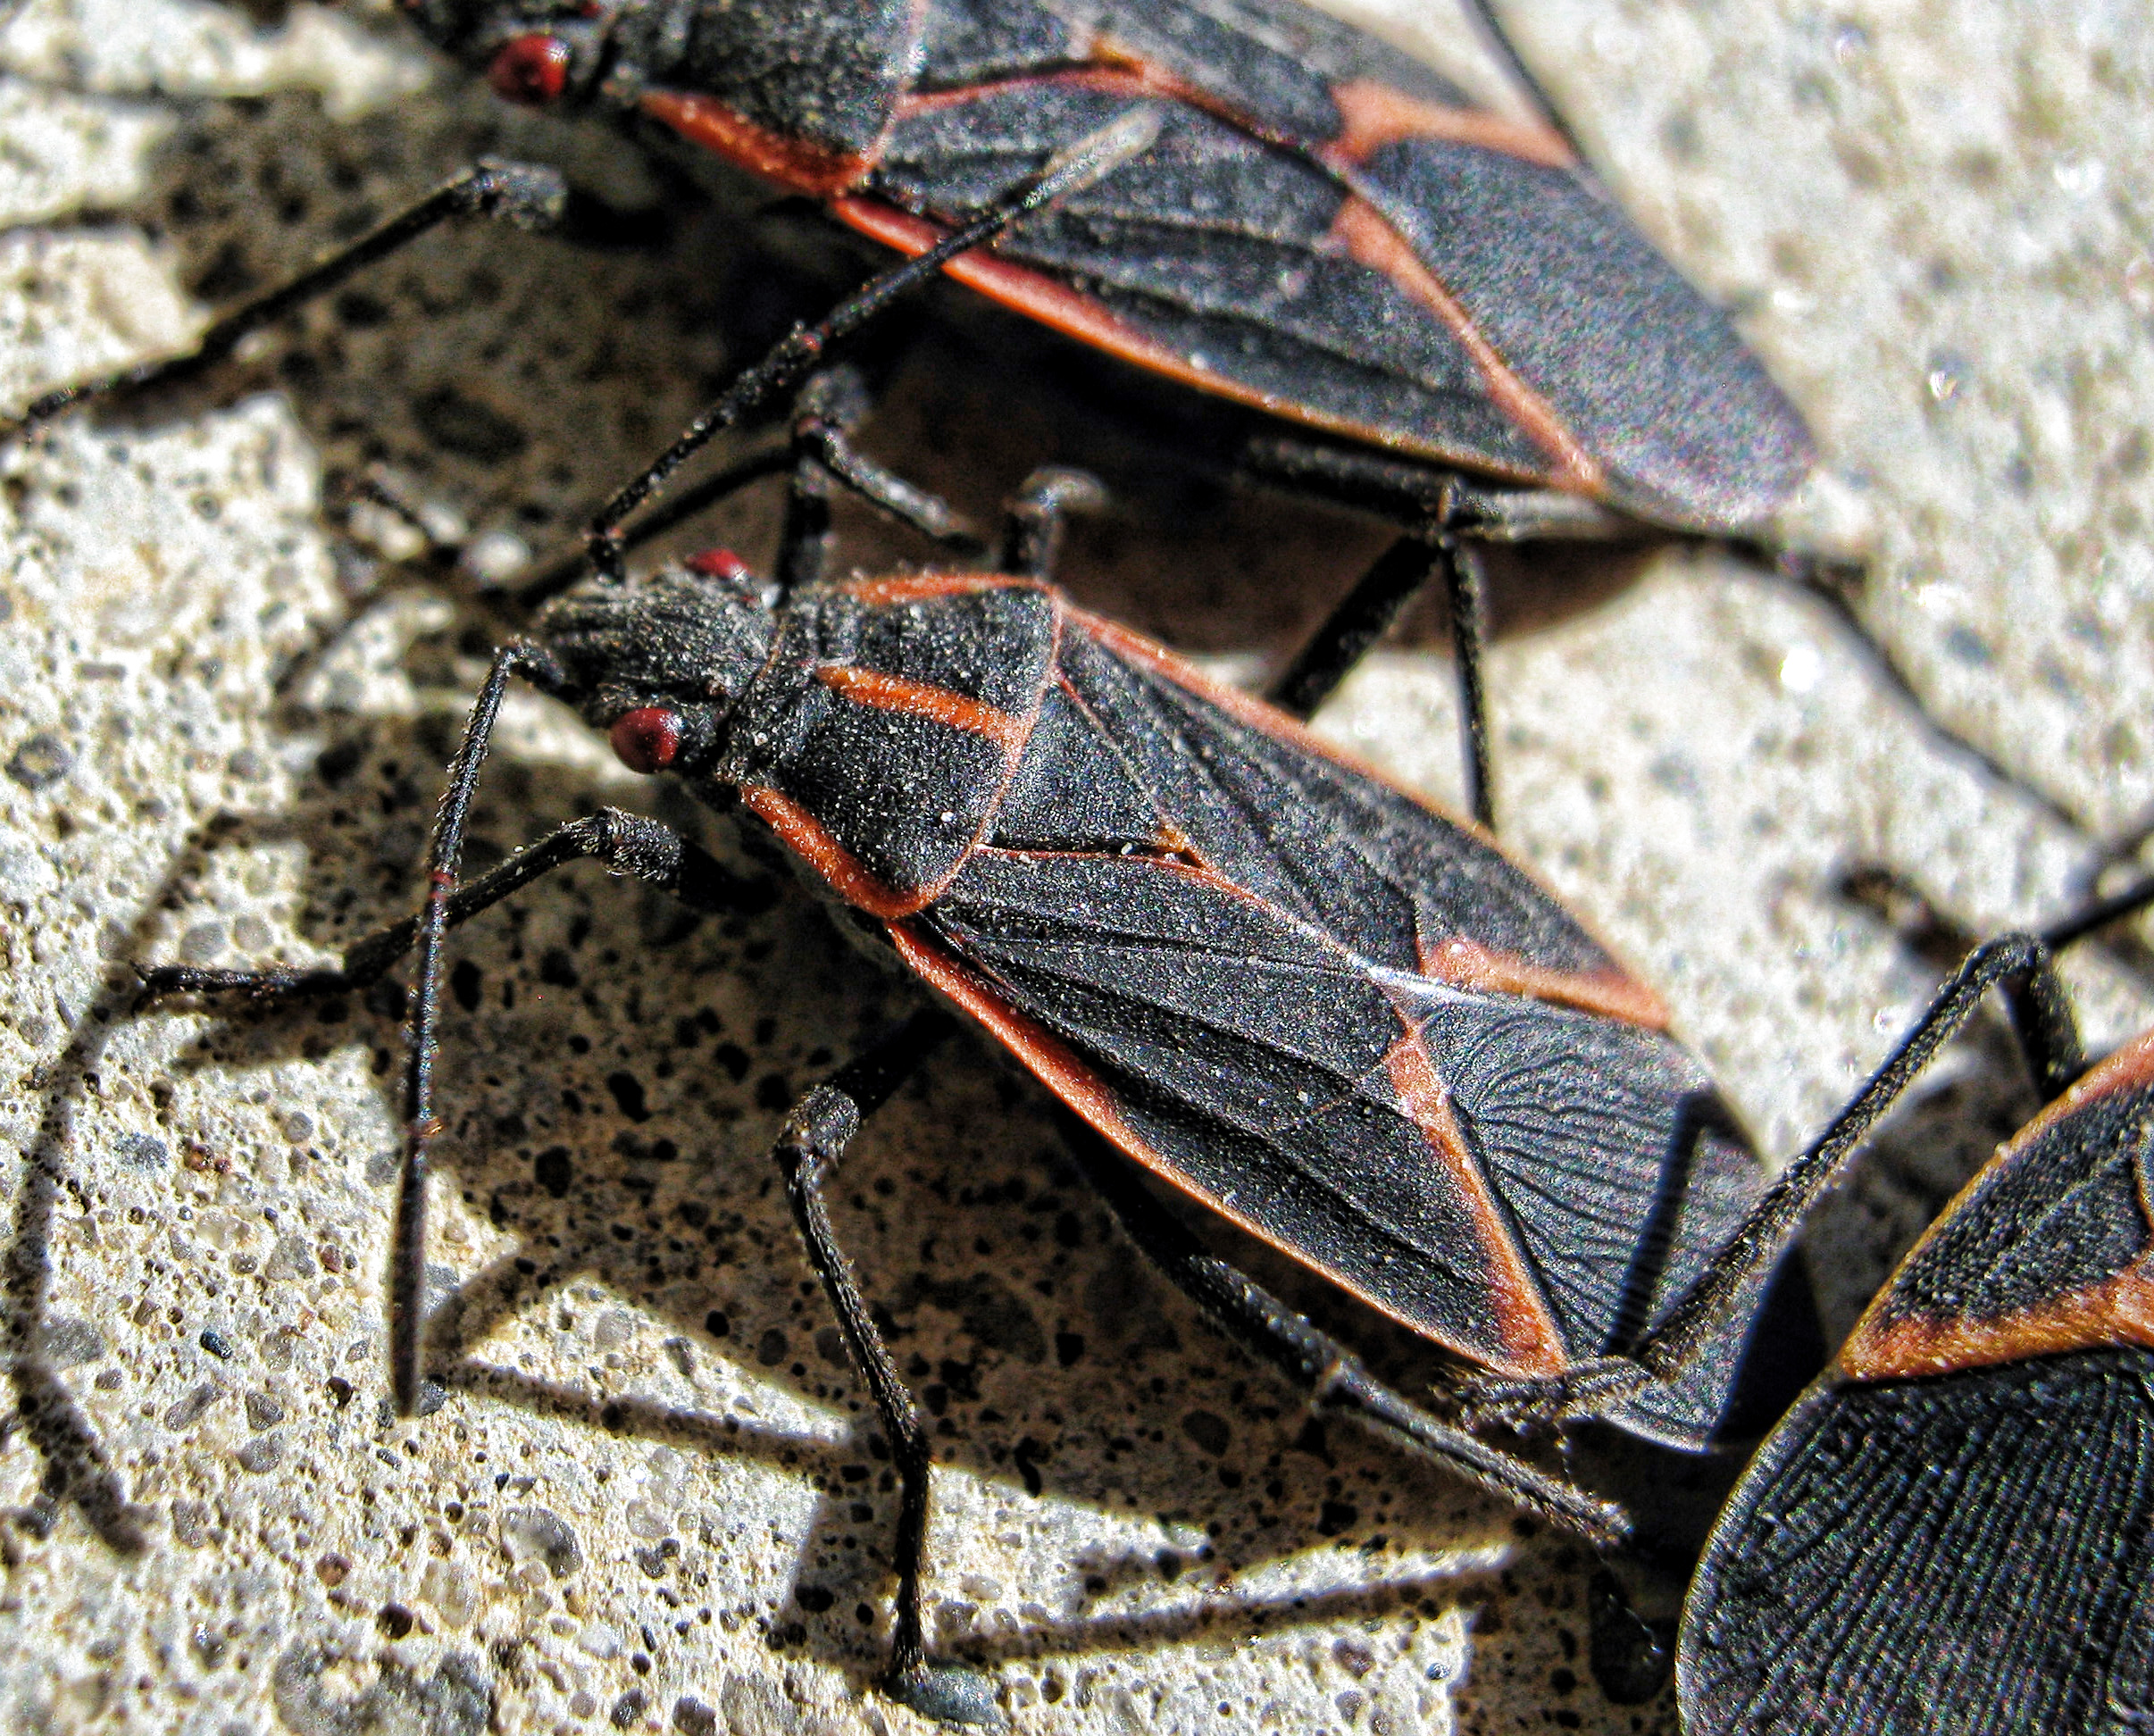 box elder bug IMG_1580 (2) copy